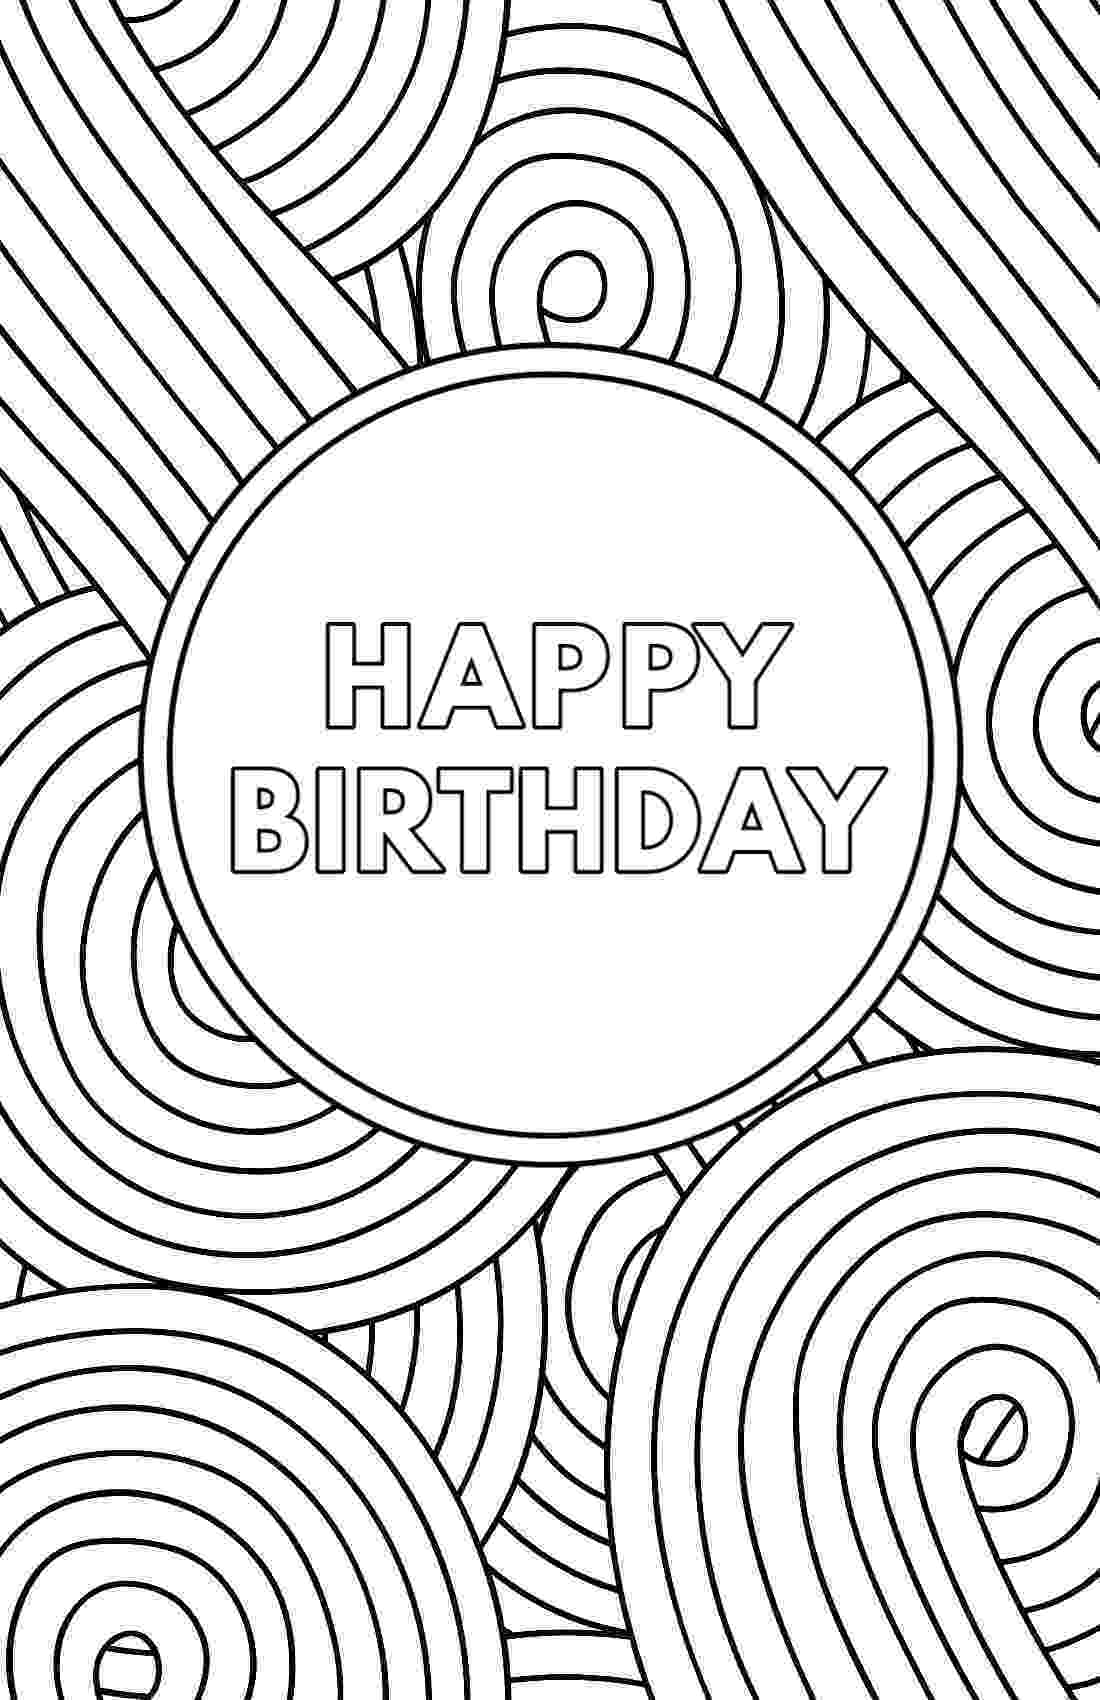 printable colouring birthday pictures happy birthday coloring pages to download and print for free pictures colouring printable birthday